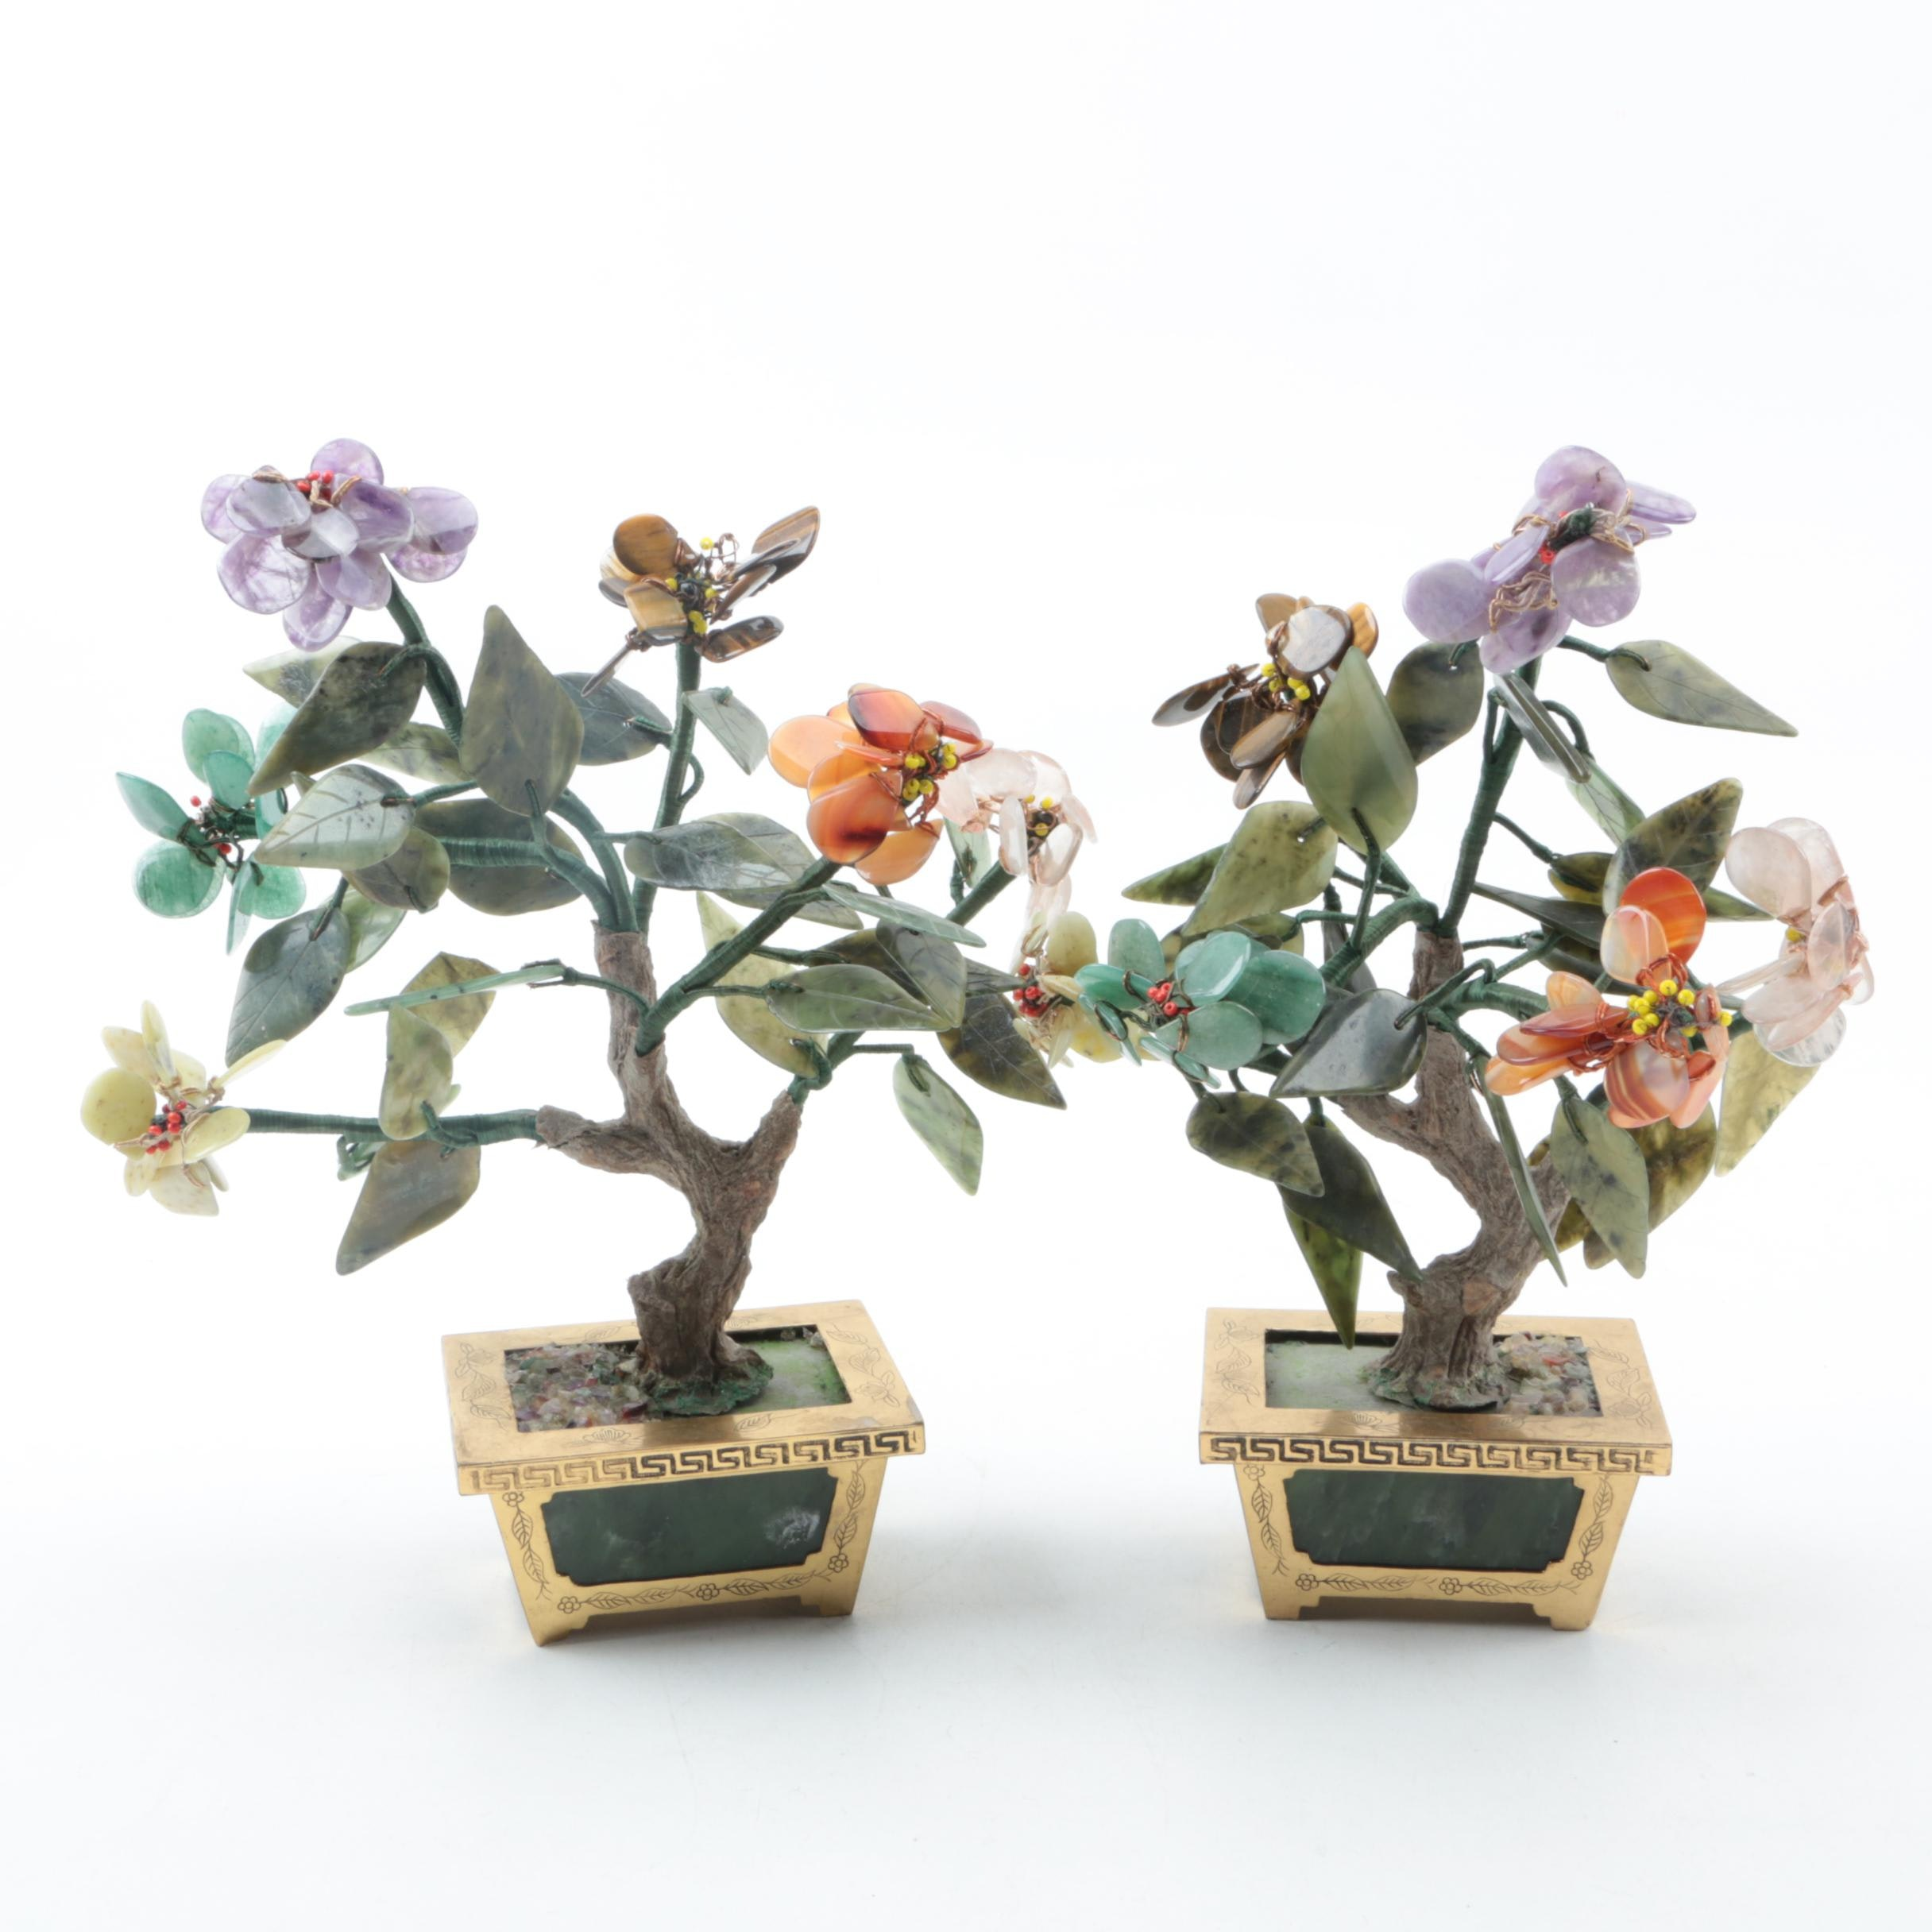 Pair of Quartz and Serpentine Trees in Brass Urns